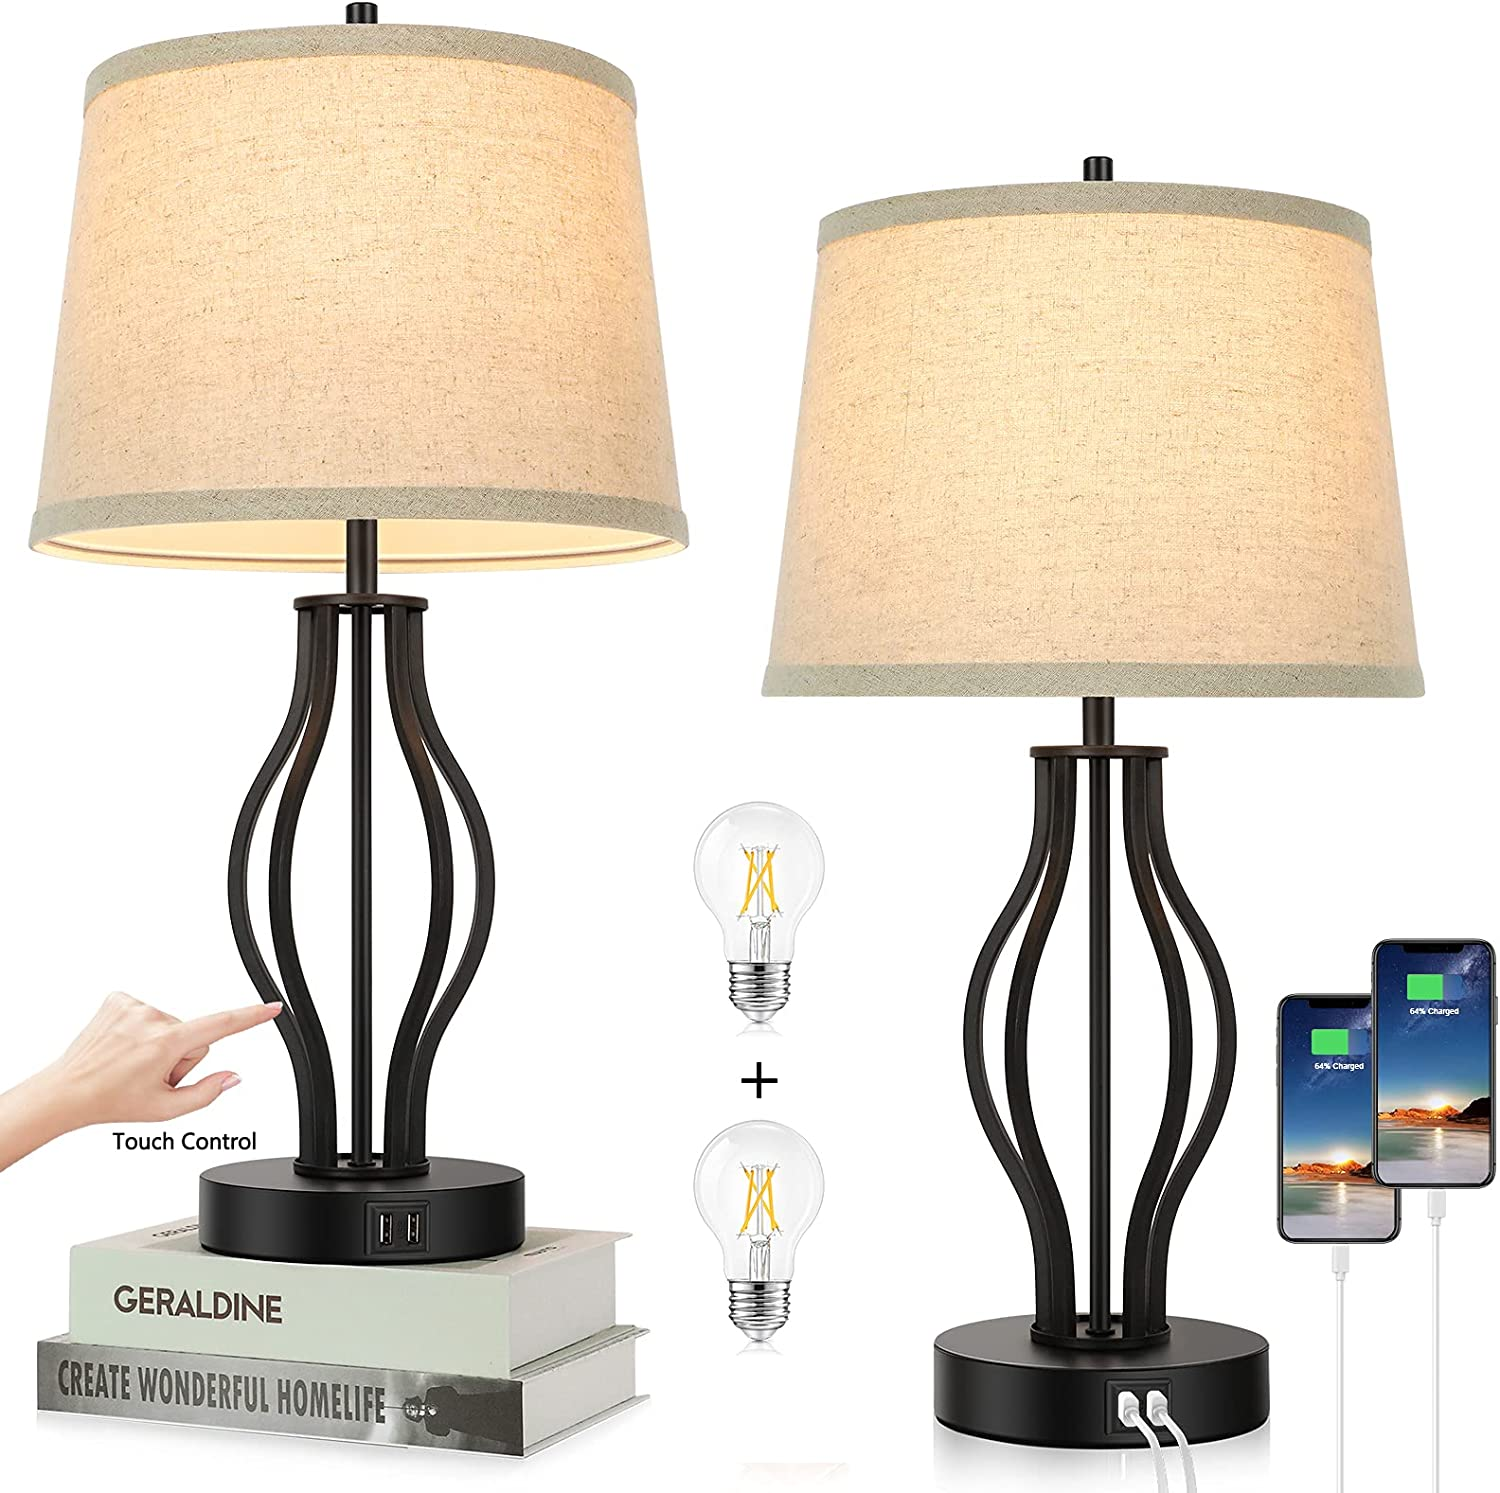 Set of 2 Touch Control 3-Way Dimmable Table Lamps Modern Bedside Lamps with 2 USB Charging Ports Desk Lamps with Openwork Middle & Fabric Shade for Living Room Bedroom Hotel Home Office Bulbs Included